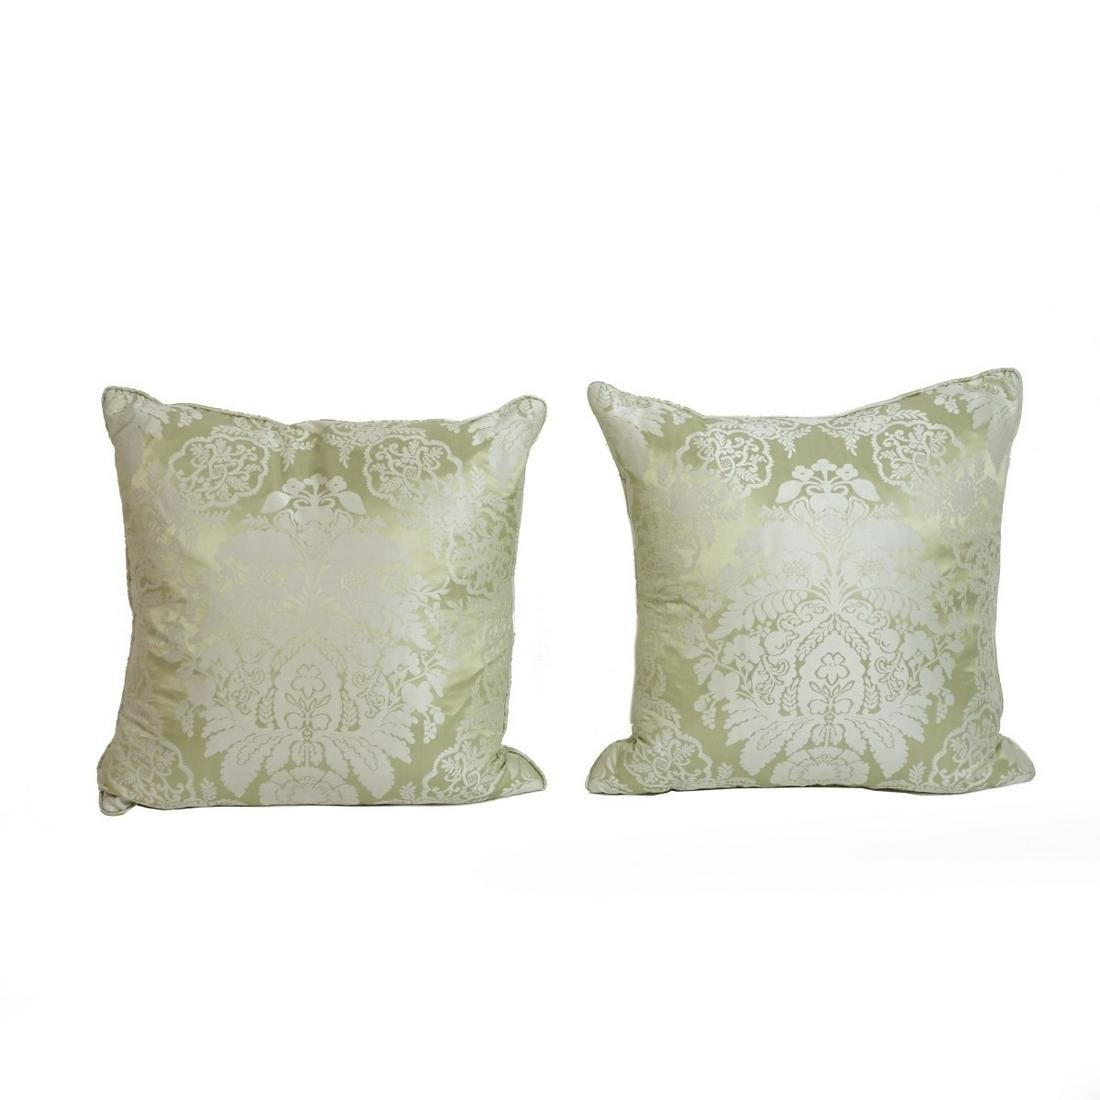 Pair of Scalamandre Silk Pillows